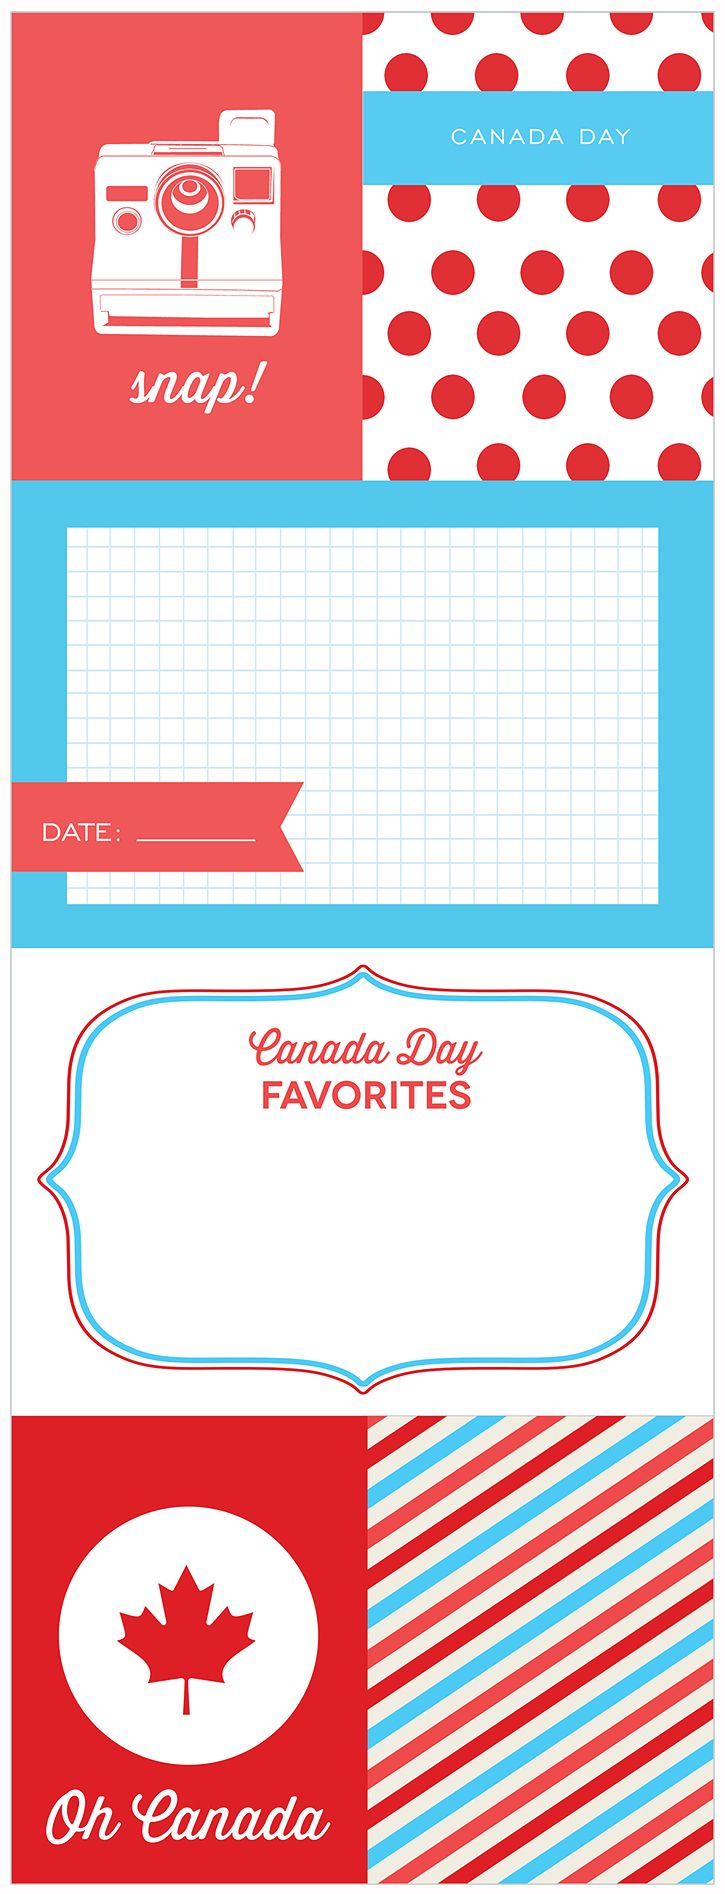 best canada day ideas images on pinterest